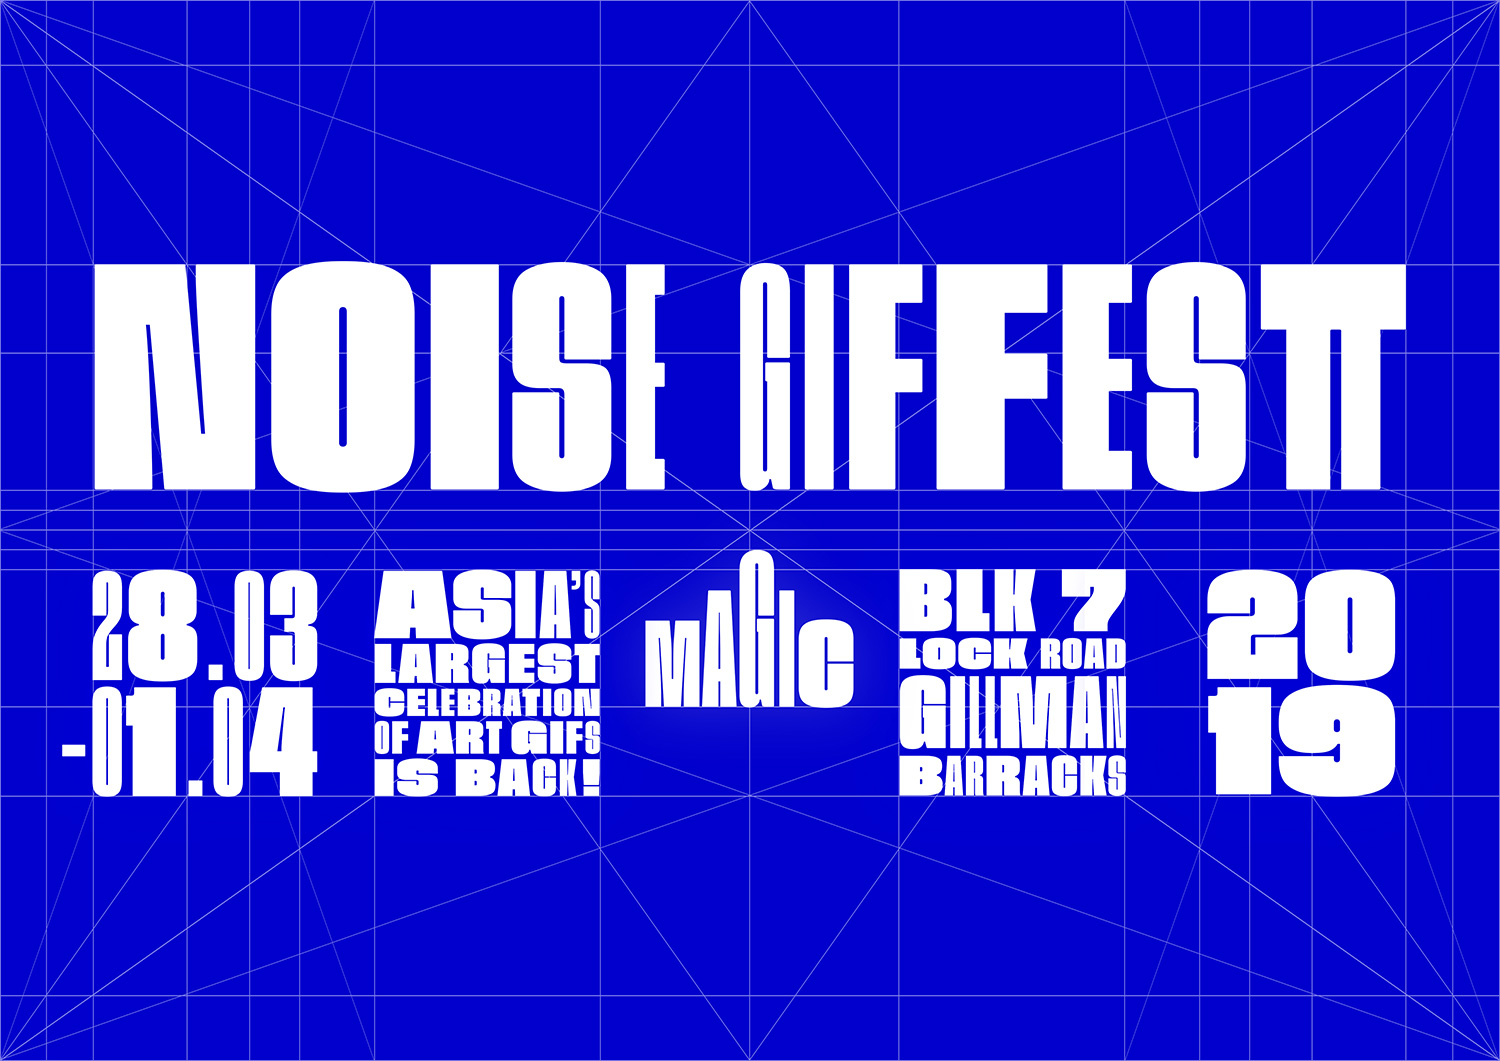 GIF Fest II 2019 festival branding identity - Brand typography typesetting configurations.